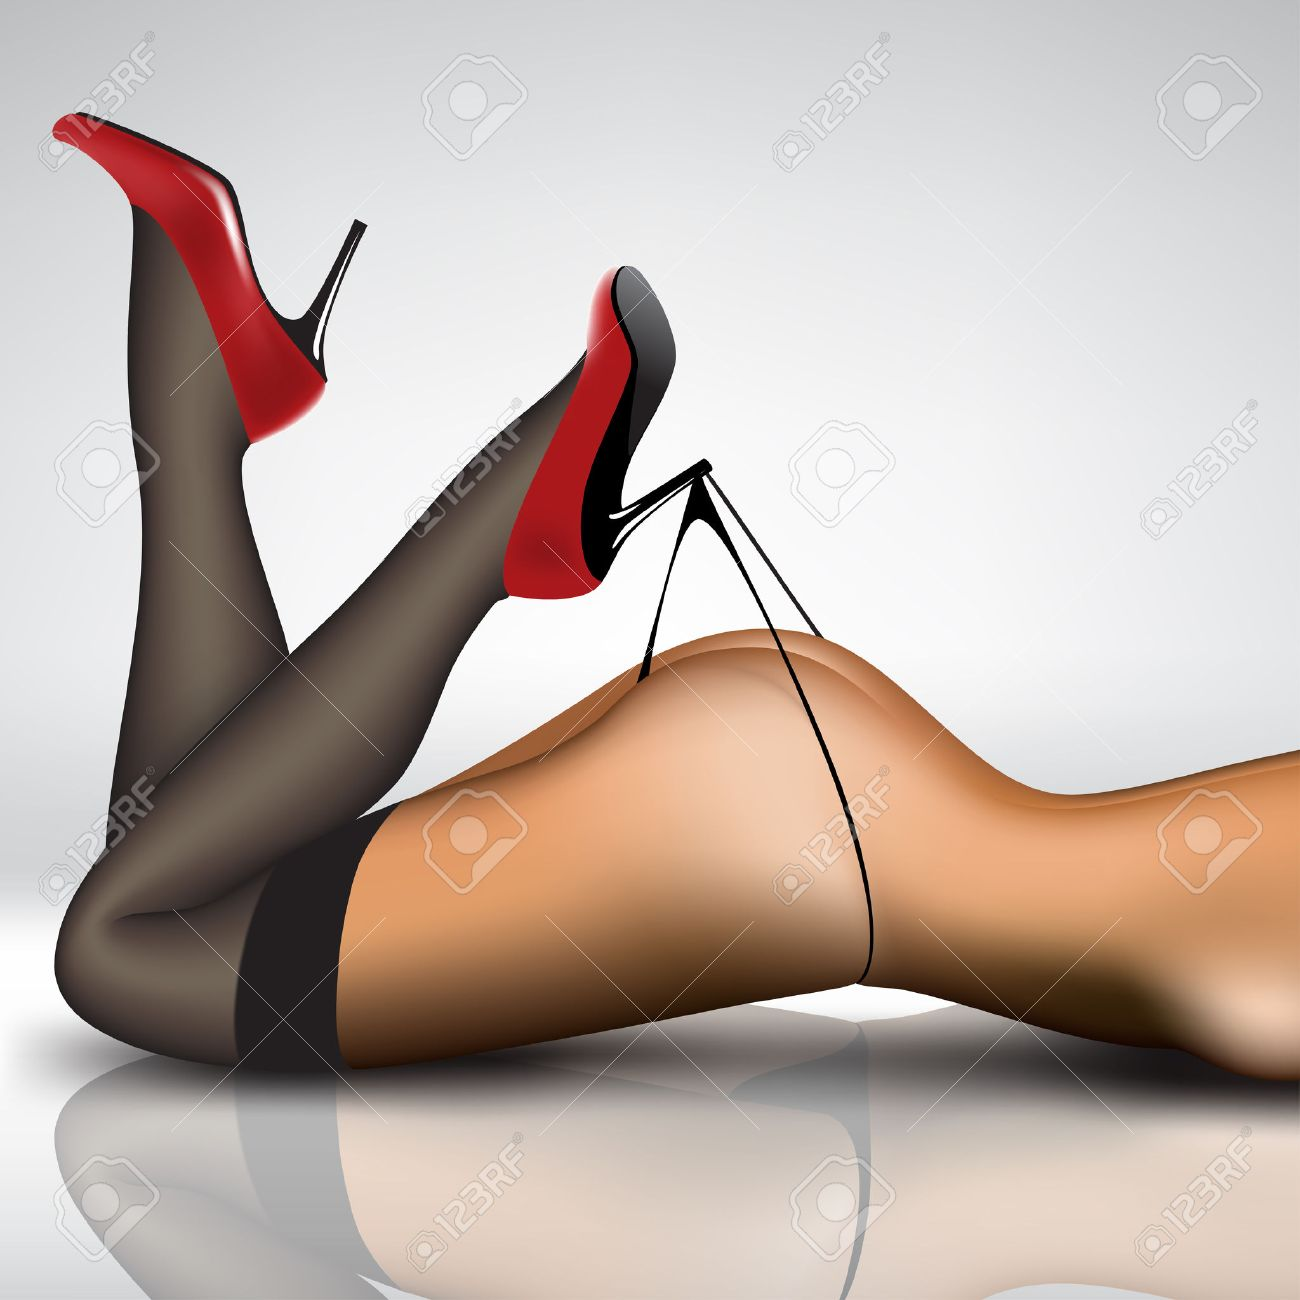 pin-up women's legs in stockings and shoes royalty free cliparts